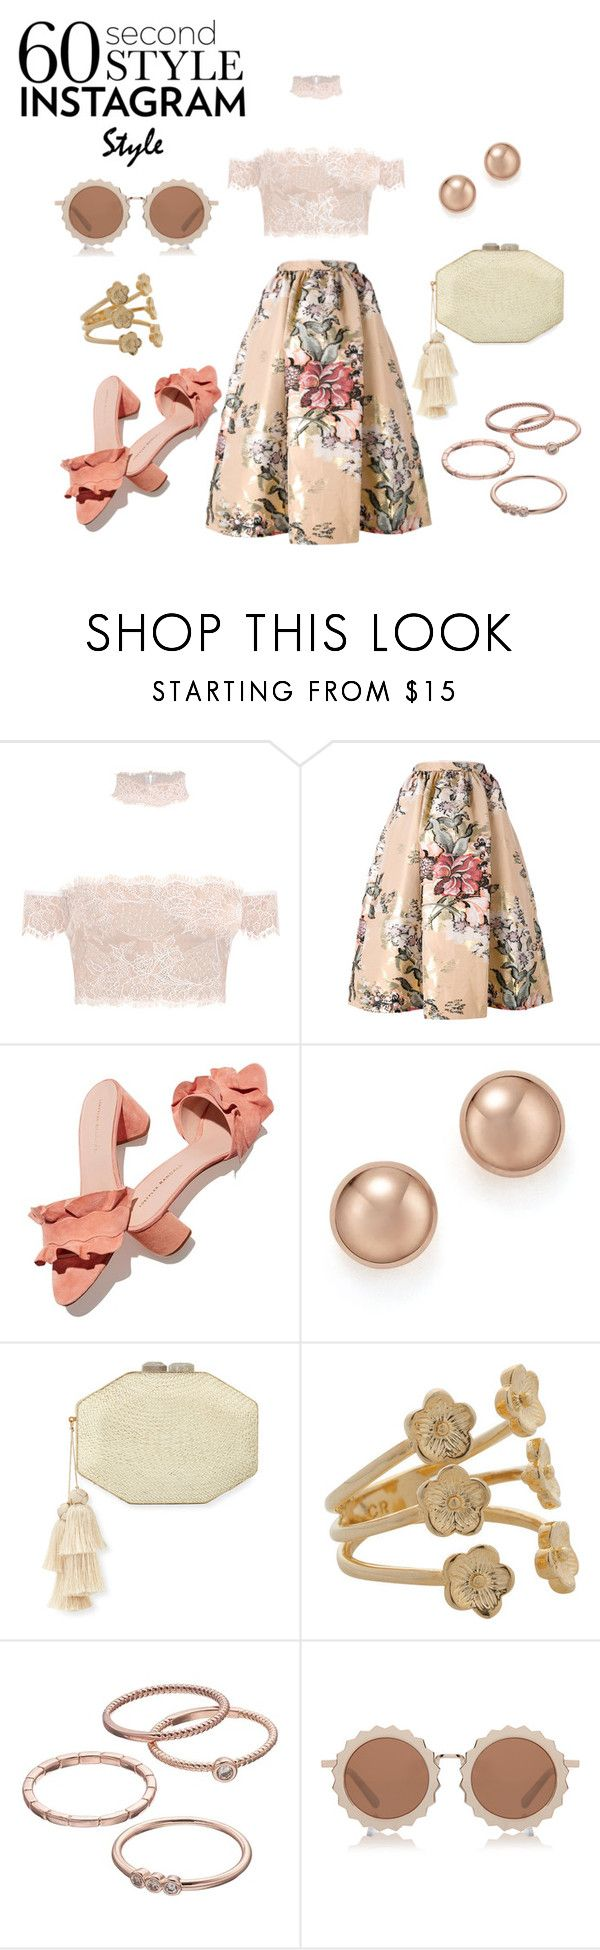 """Floral and Blush"" by sibsandco ❤ liked on Polyvore featuring Fendi, Loeffler Randall, Bloomingdale's, Rafe, David Jones, LC Lauren Conrad, House of Holland, 60secondstyle and PVShareYourStyle"